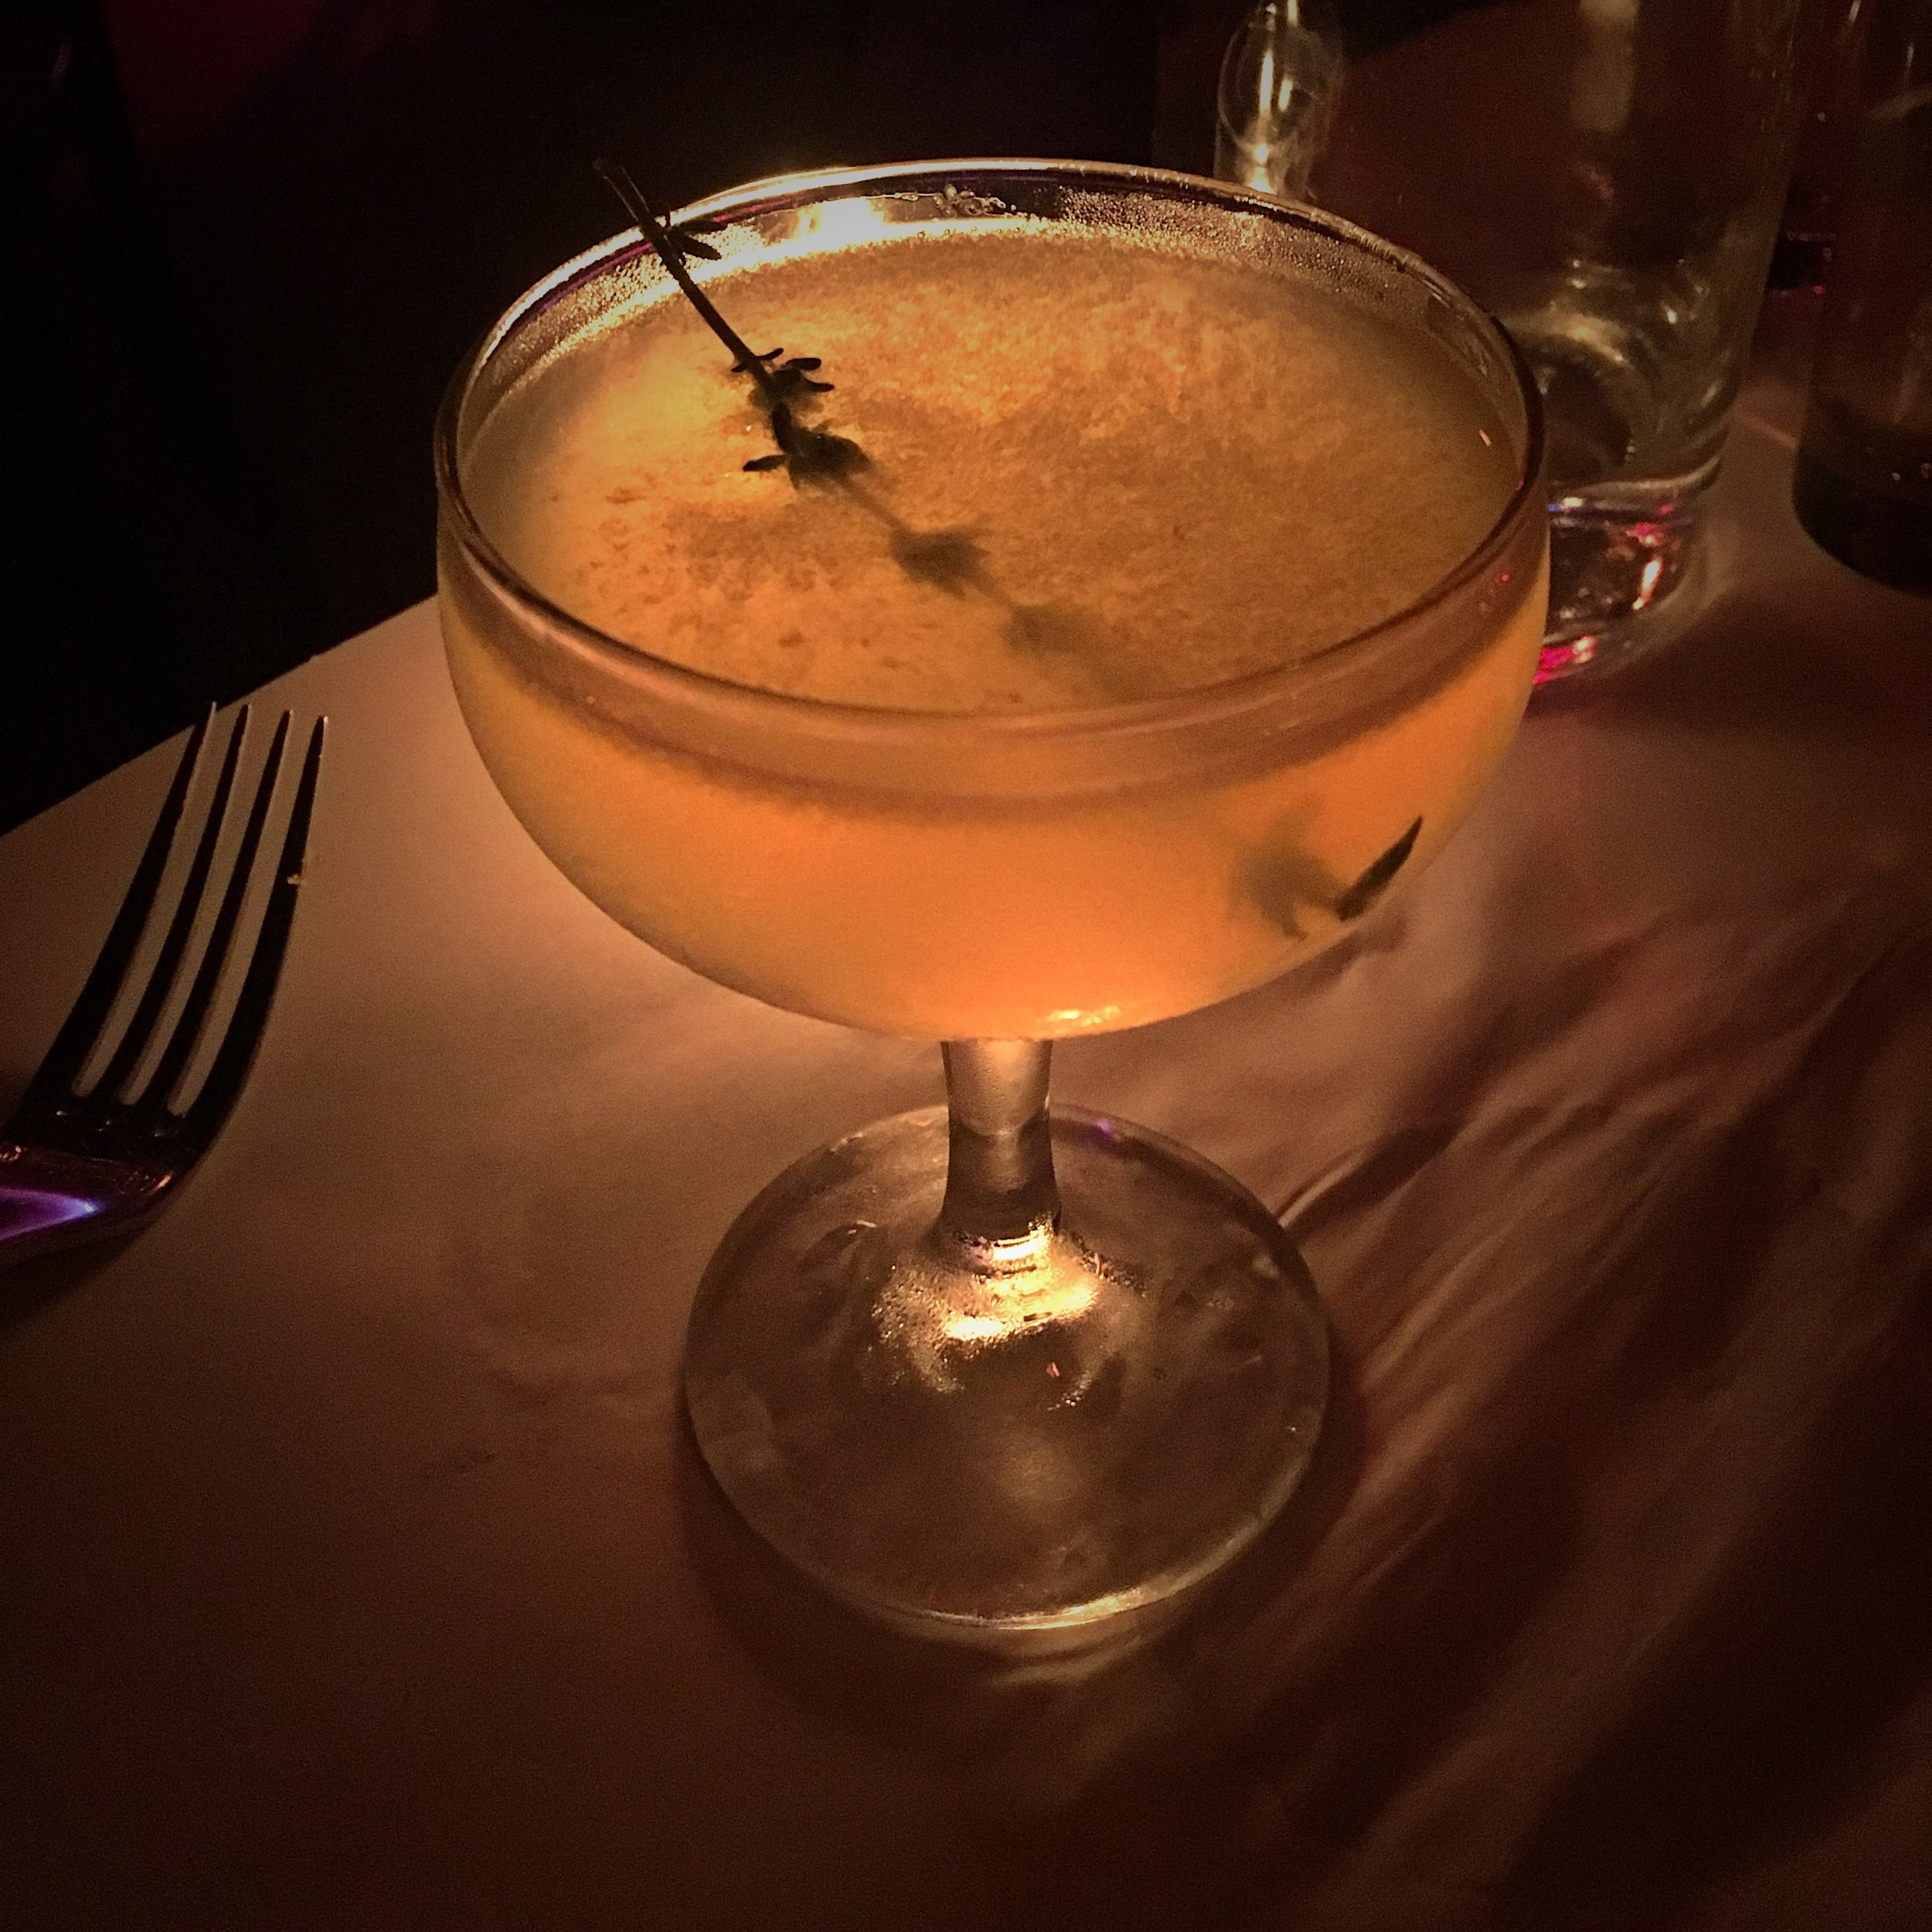 The King's Cross - rosemary infused gin, fresh lemon juice and almond syrup ($17)